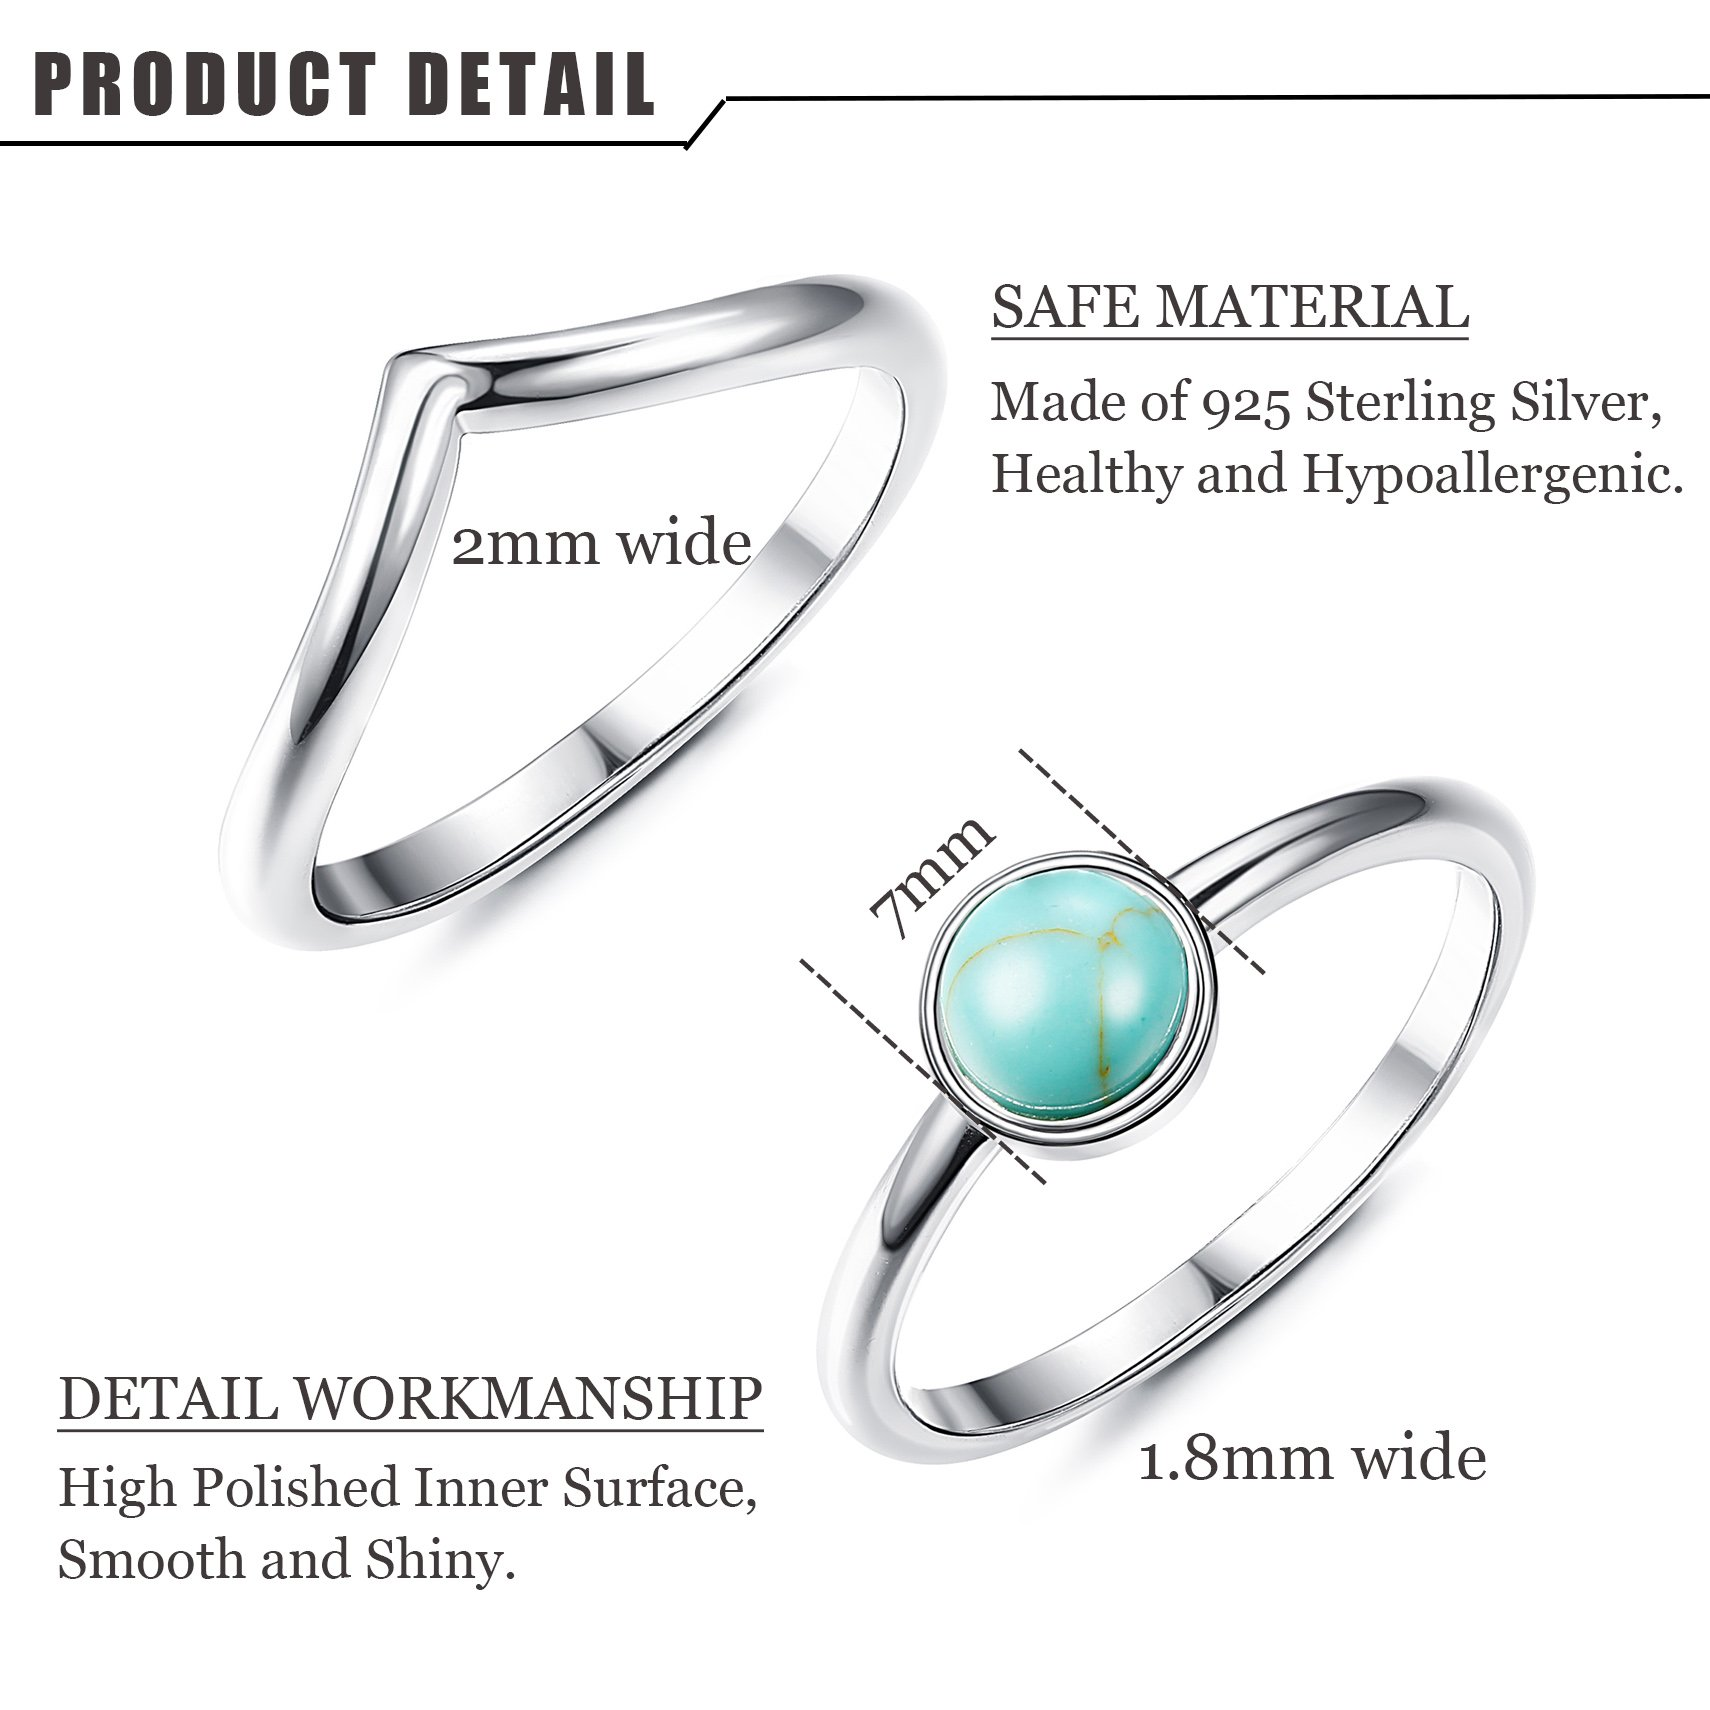 FUNRUN JEWELRY 2 PCS Sterling Silver Stackable Rings for Women Girls Chevron Thumb Turquoise Rings Set High Polish Size 9 by FUNRUN JEWELRY (Image #1)